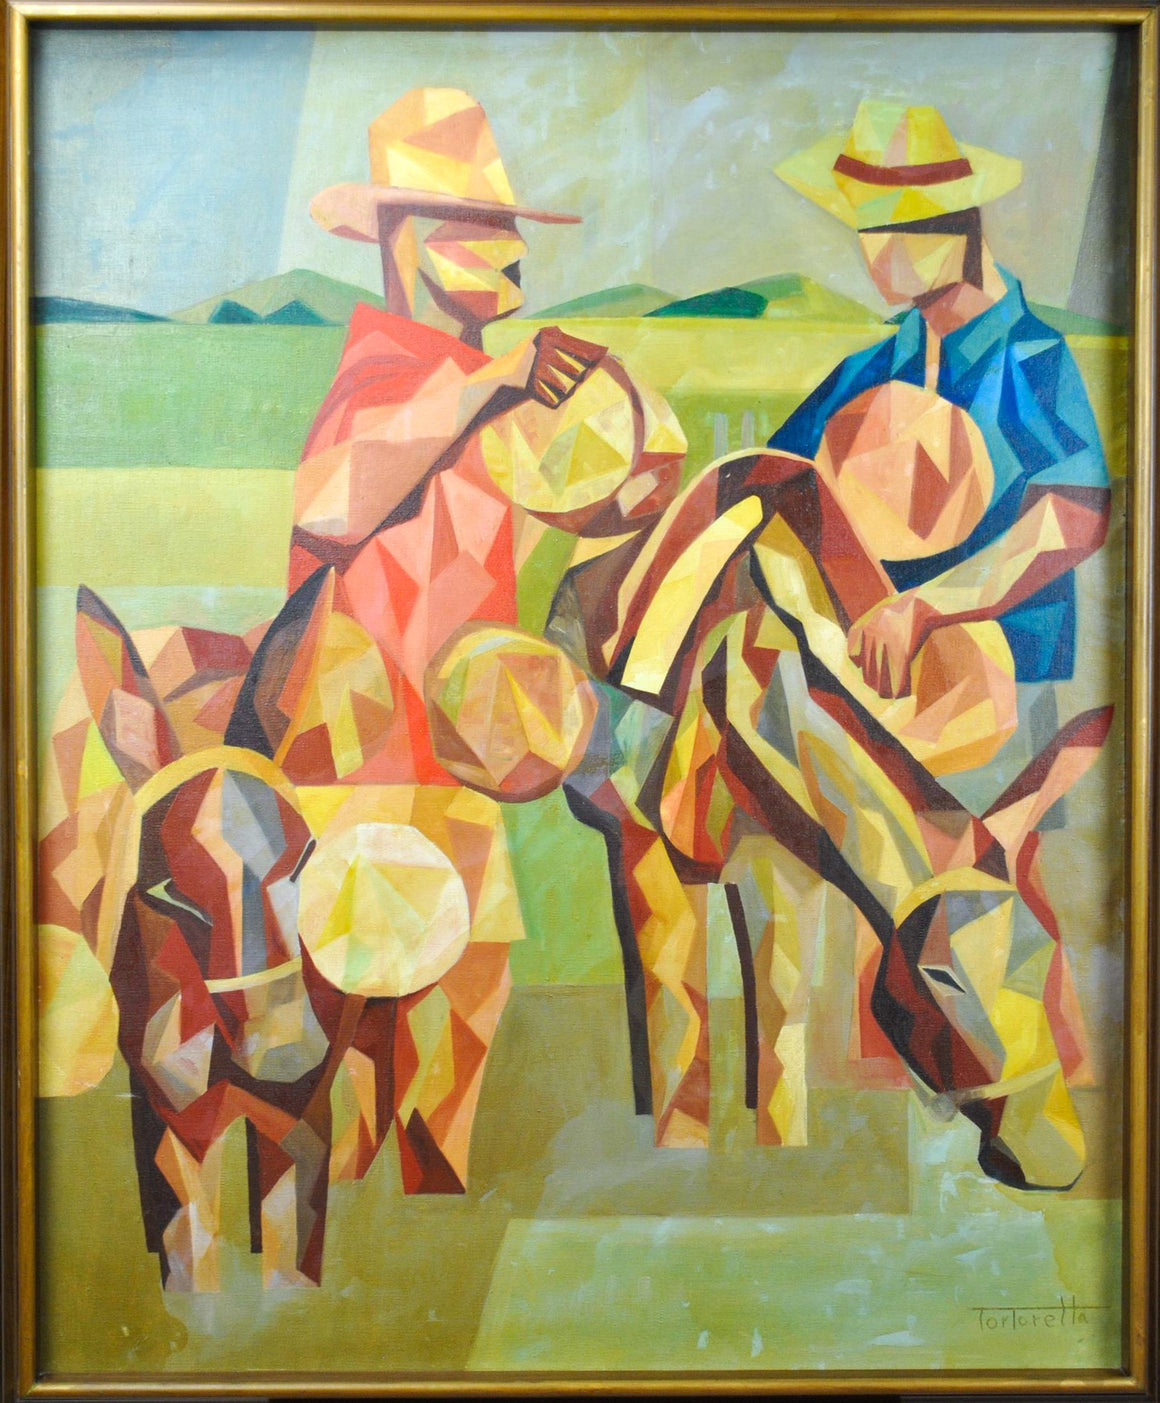 Tortorella -Two Men with Pack Animals - Oil Painting